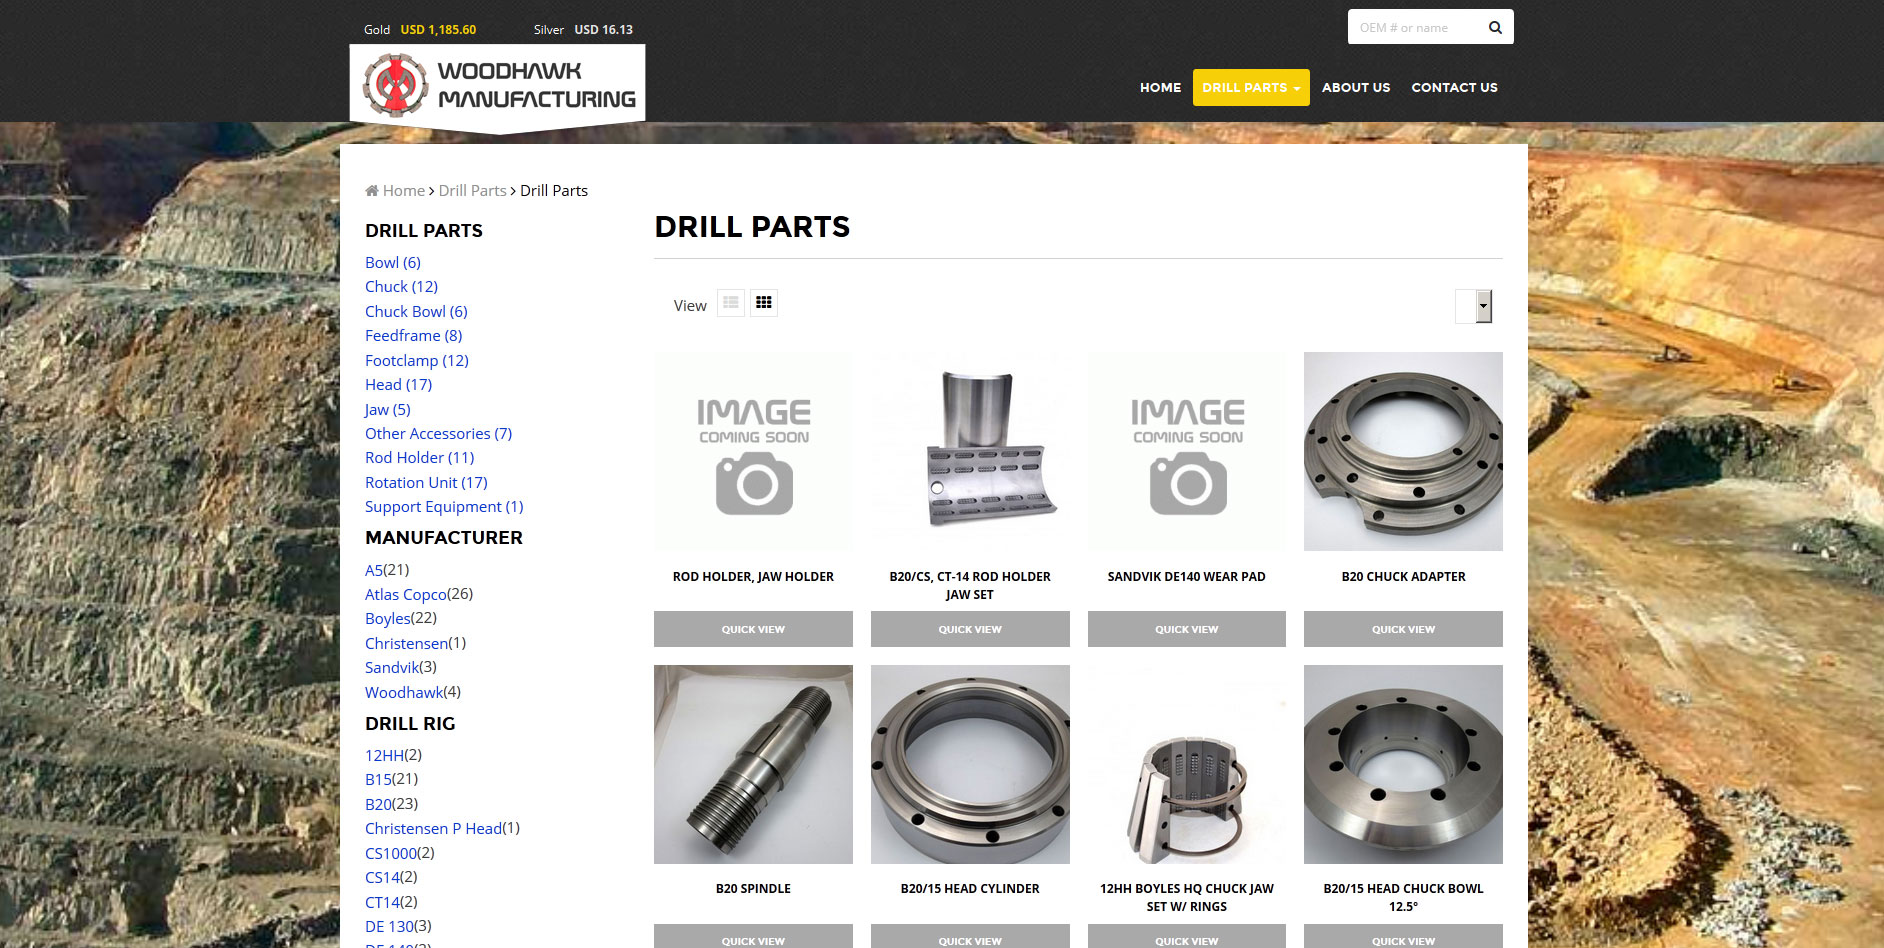 Woodhawk Manufacturing Website Design